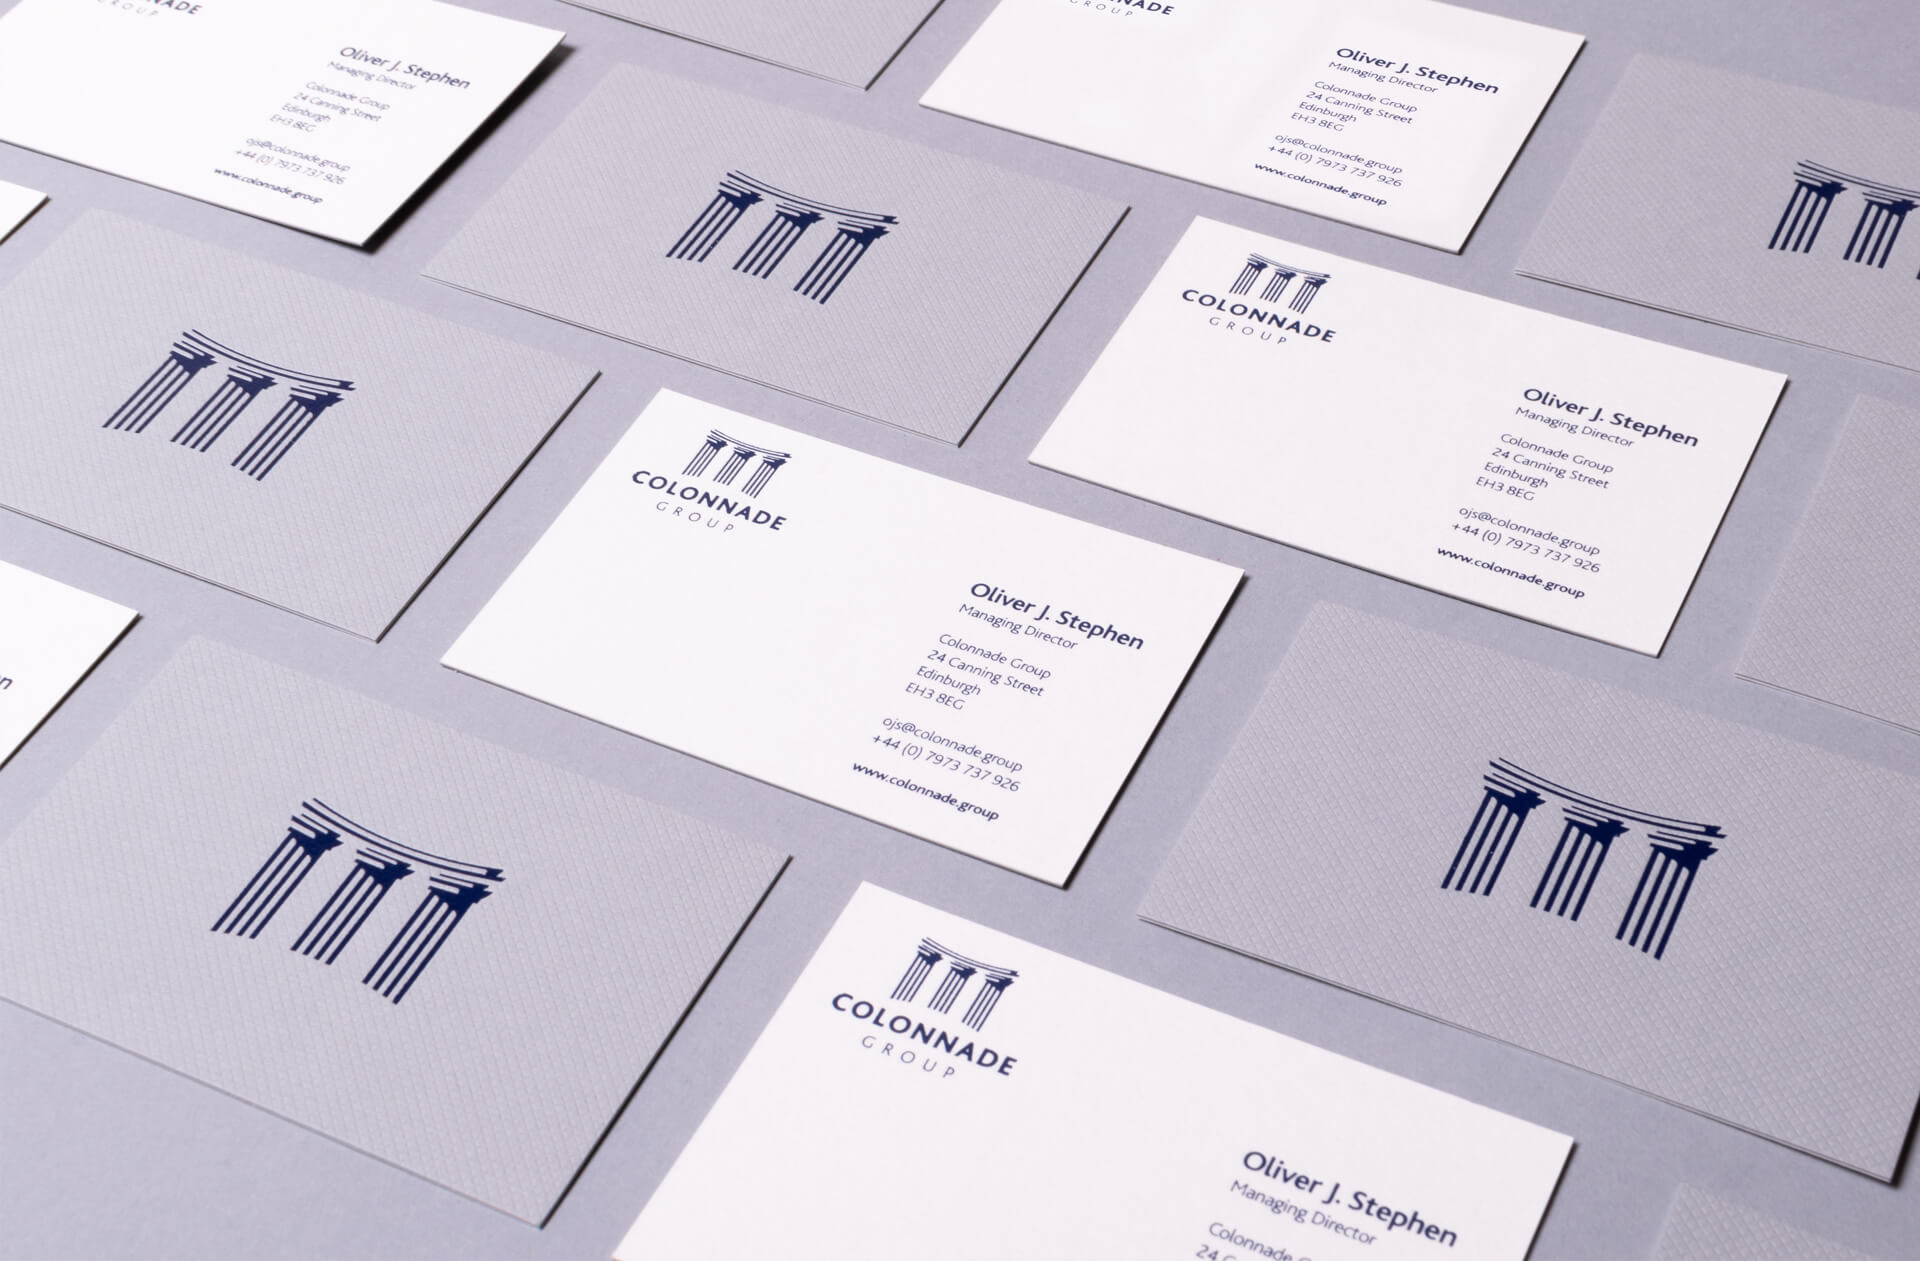 Colonnade Group Business Cards